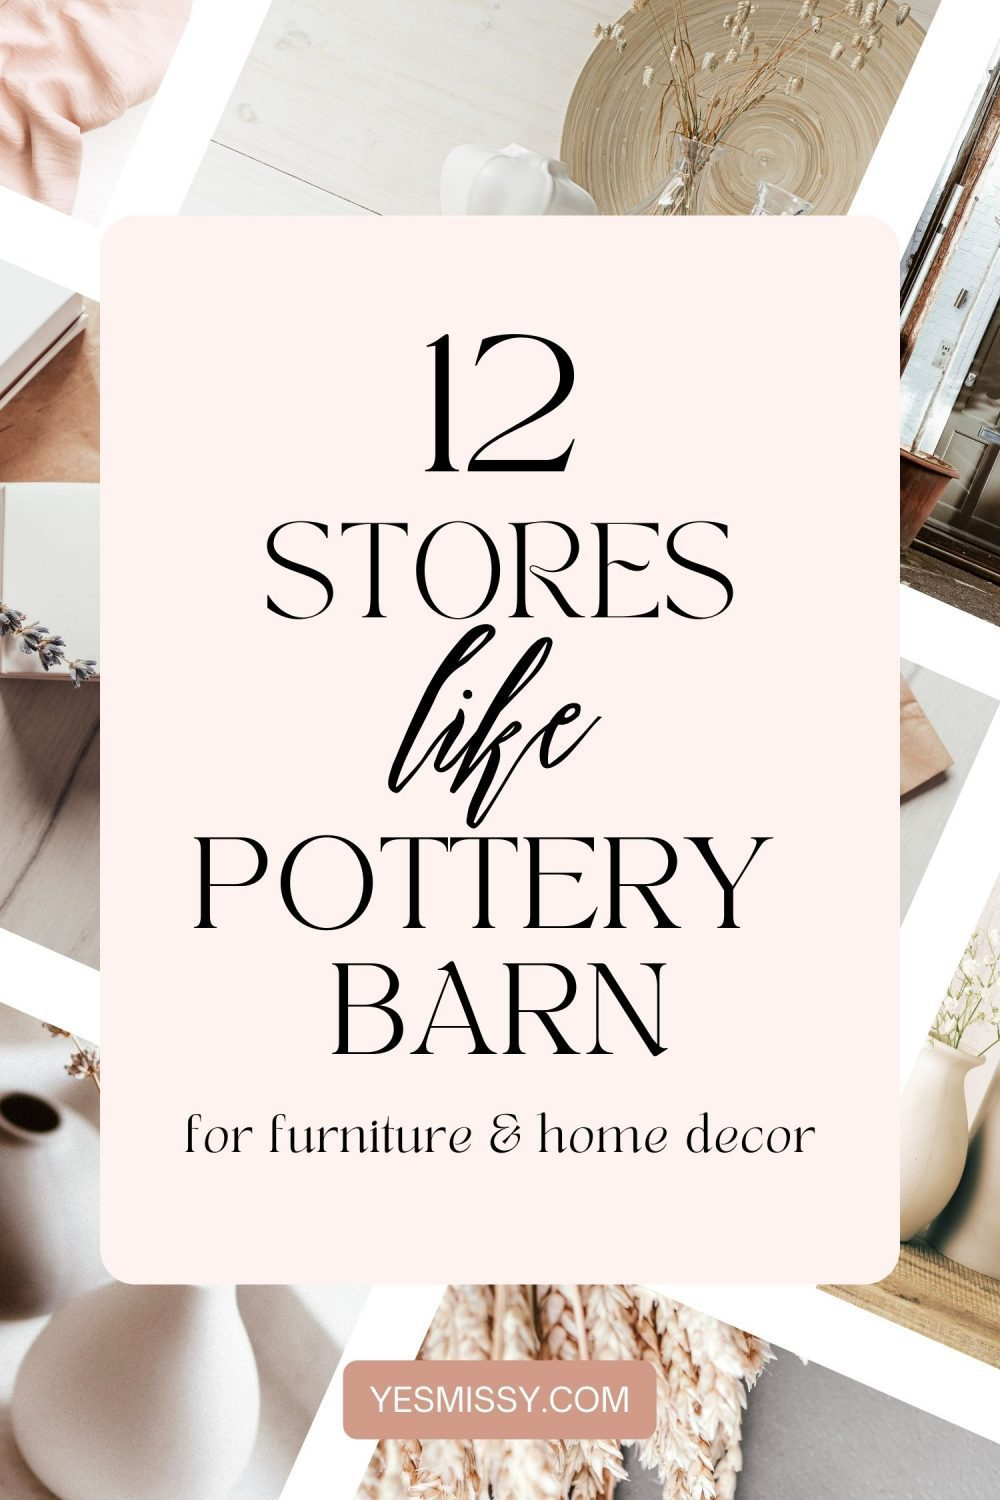 I love the classic design aesthetic of Pottery Barn and if you love it too, you're going to love these 12 furniture and decor stores like pottery barn in a similar price range and style. Get the full list and more home decor tips on yesmissy.com.